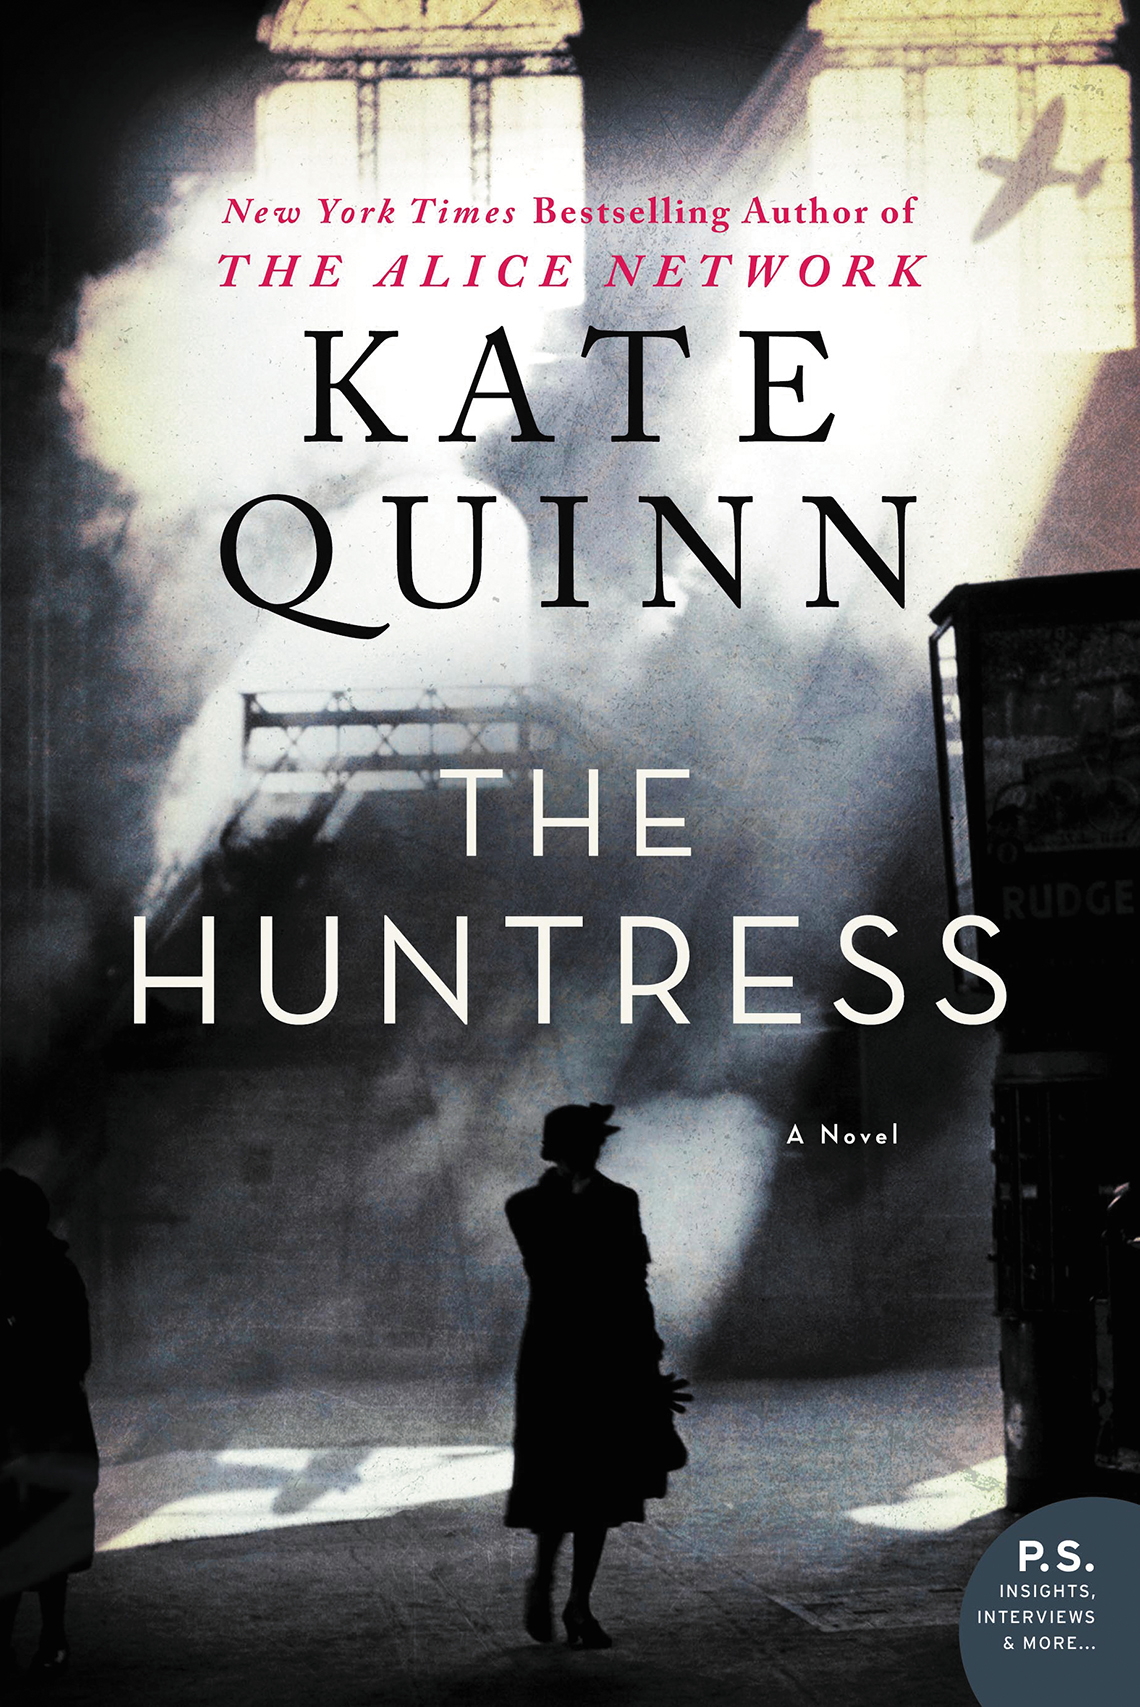 Book cover reads: New York Times Bestselling Author of the Alice Network, Kate Quinn, The Huntress